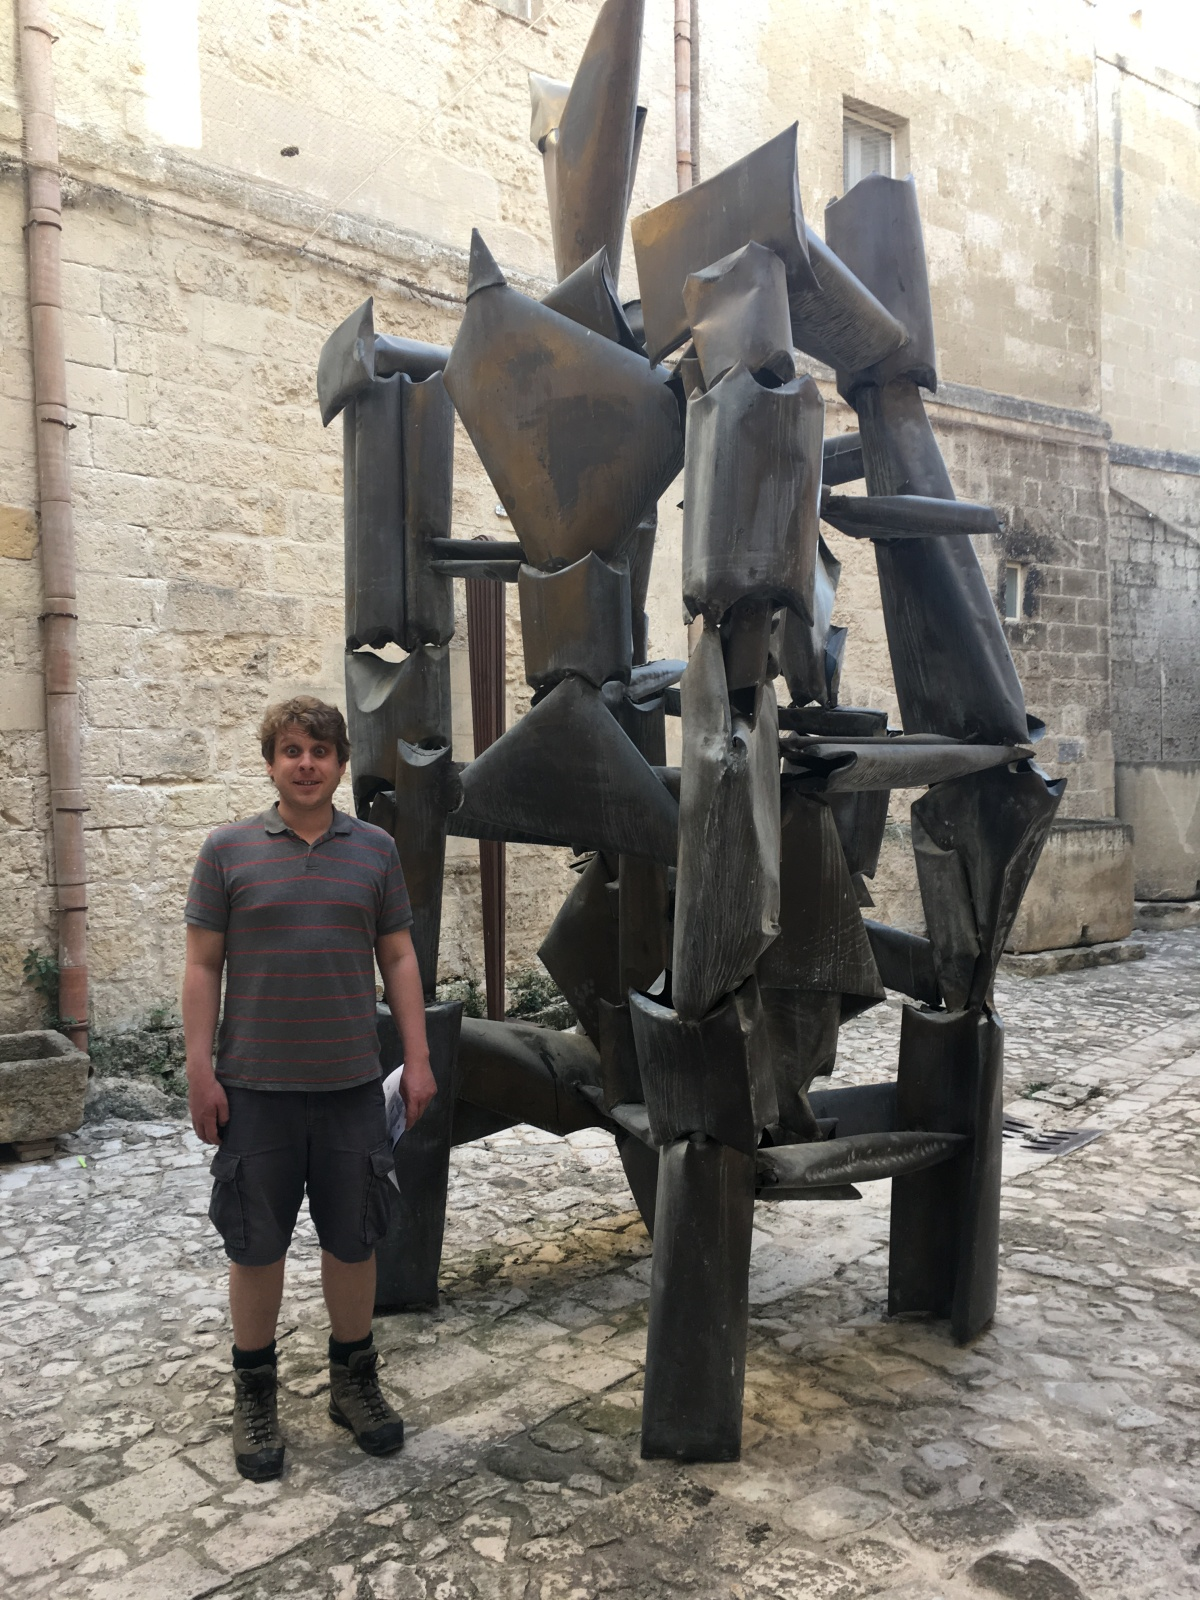 MUSMA, Matera's museum of modern sculpture set in a centuries-old cave. We visited on our babymoon.